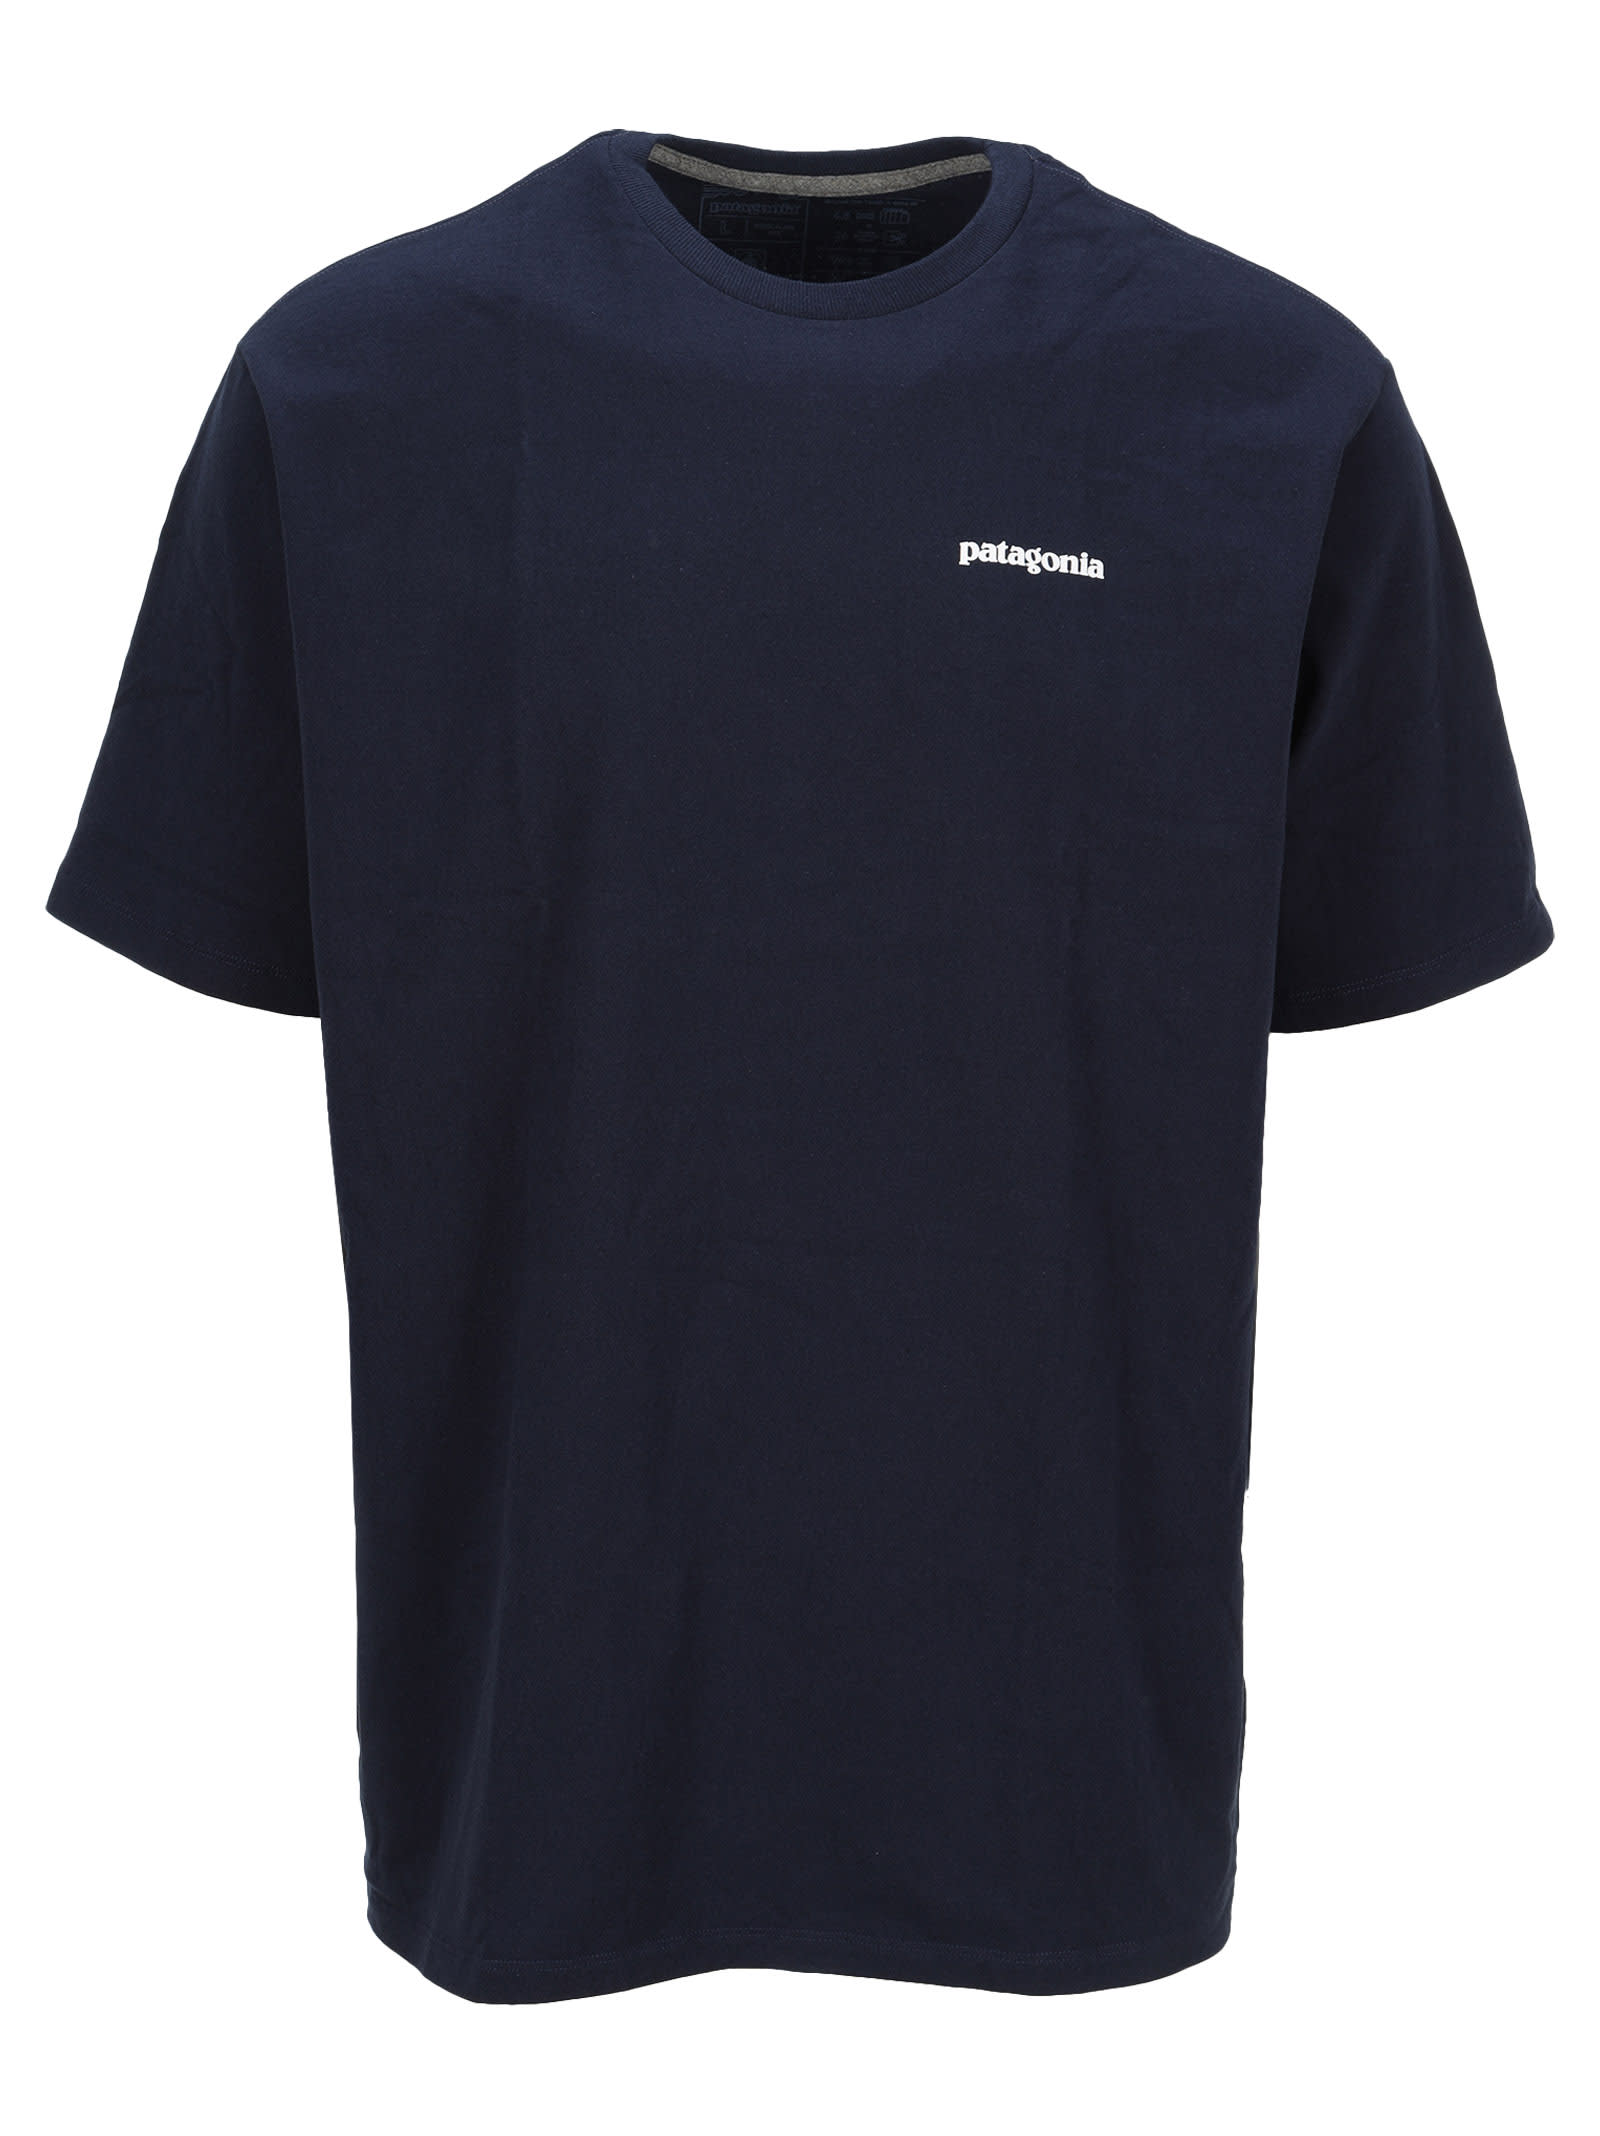 Cotton Blend P-6 Logo Responsibili-tee® T-shirt By Patagonia. Featuring: - Crew Neck; - Logo Printed To The Chest And Back; - Short Sleeves; - Straight Hem. Composition: 50% RECYCLED COTTON, 50% RECYCLED POLYESTER